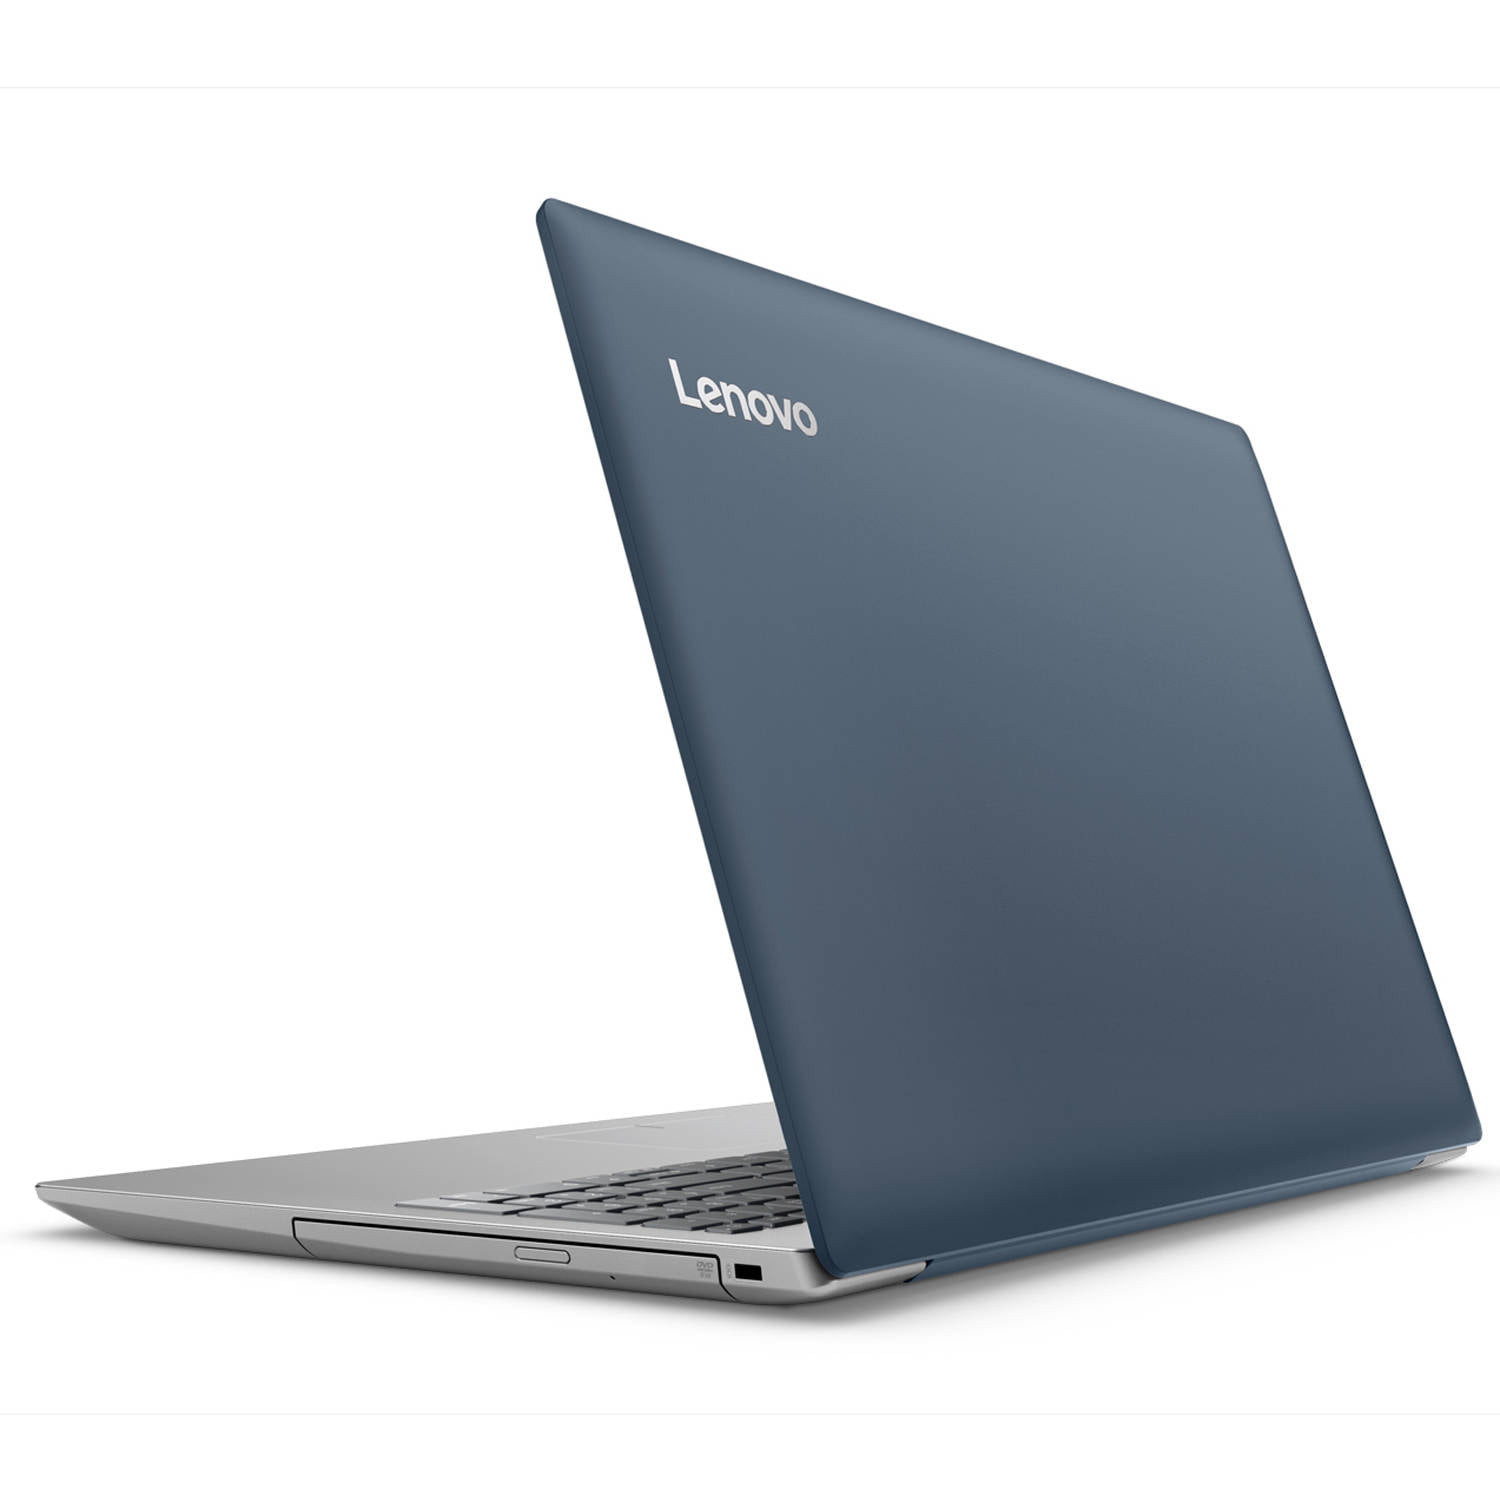 "Lenovo ideapad 320 15.6"" Laptop, Windows 10, AMD A9-9420 Dual-Core Processor, 4GB RAM, 1TB Hard Drive... by Lenovo"